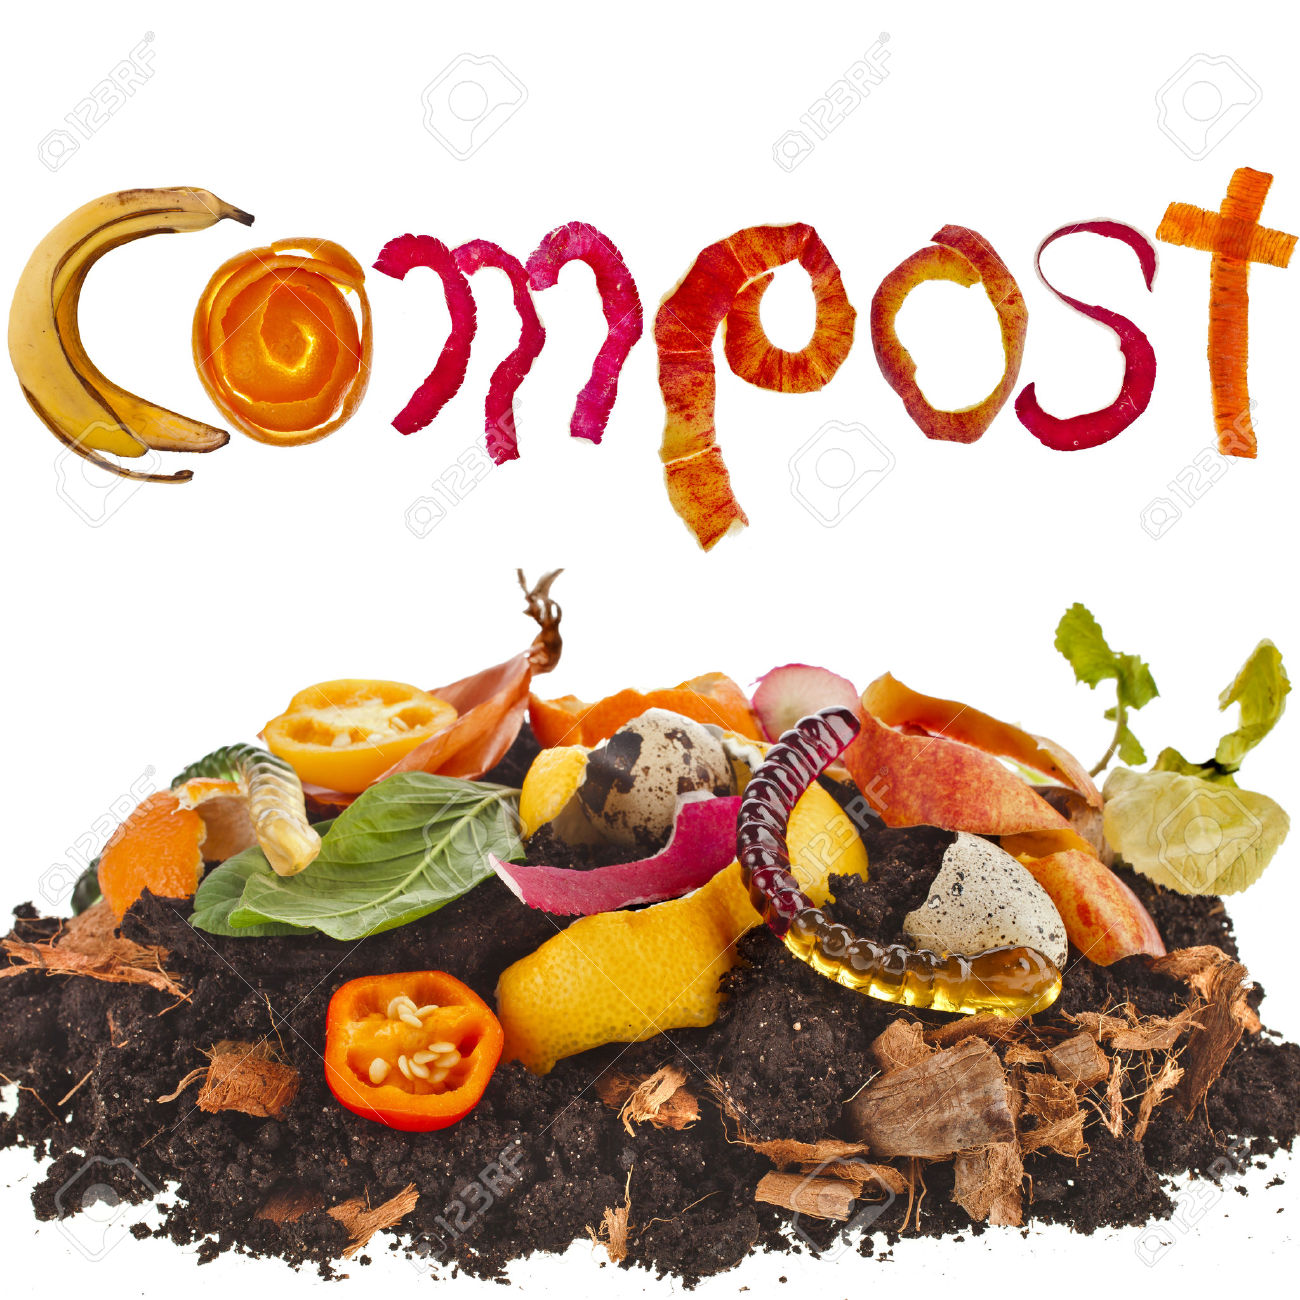 Master Gardeners' Workshop: Composting